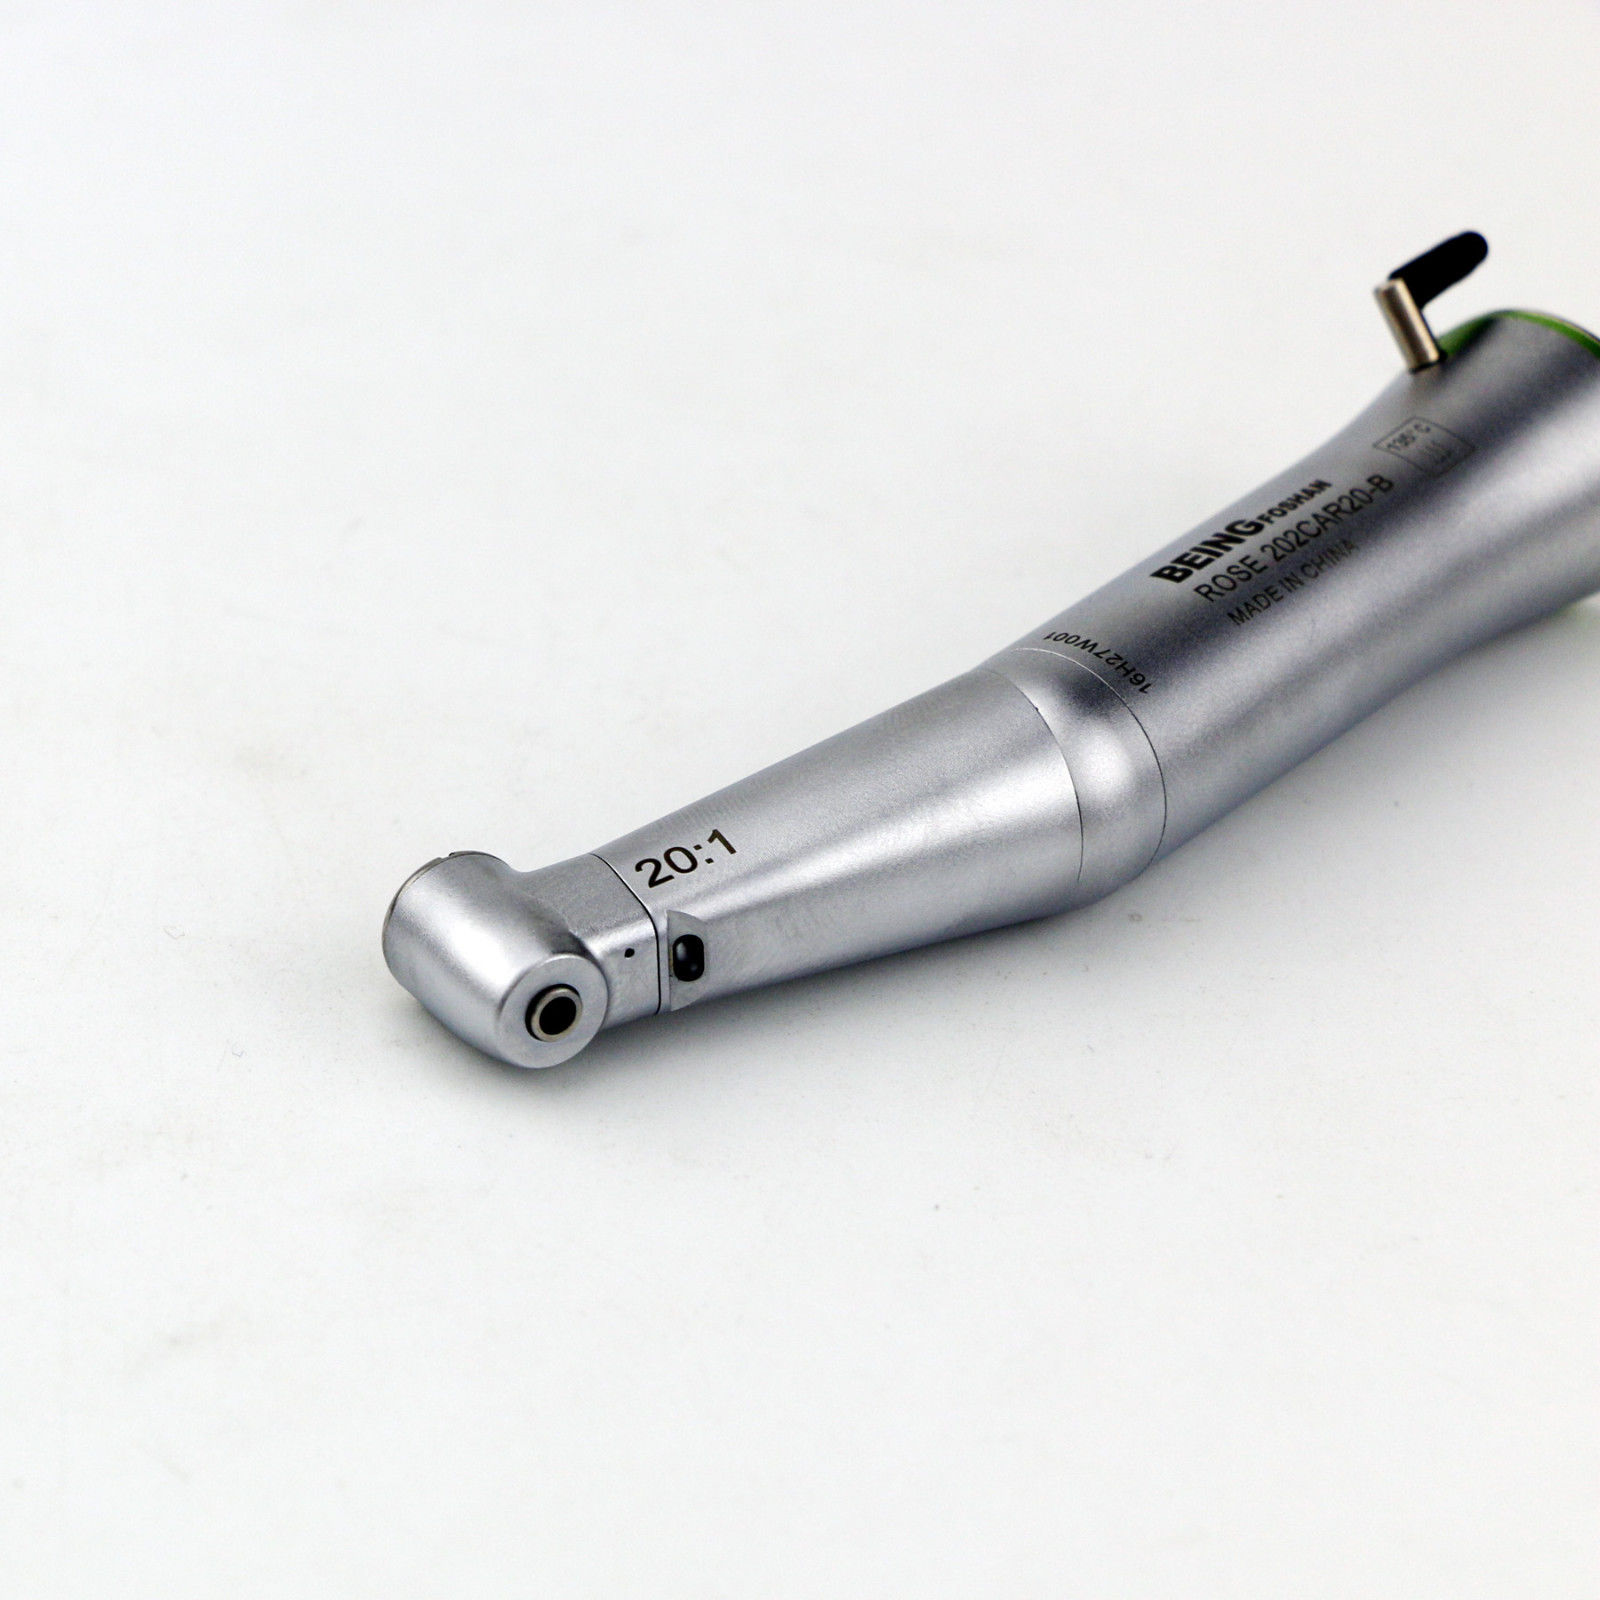 BEING 20:1 Rose 202CAR20-B Dental Fiber Optic LED Push Contra Angle Handpiece